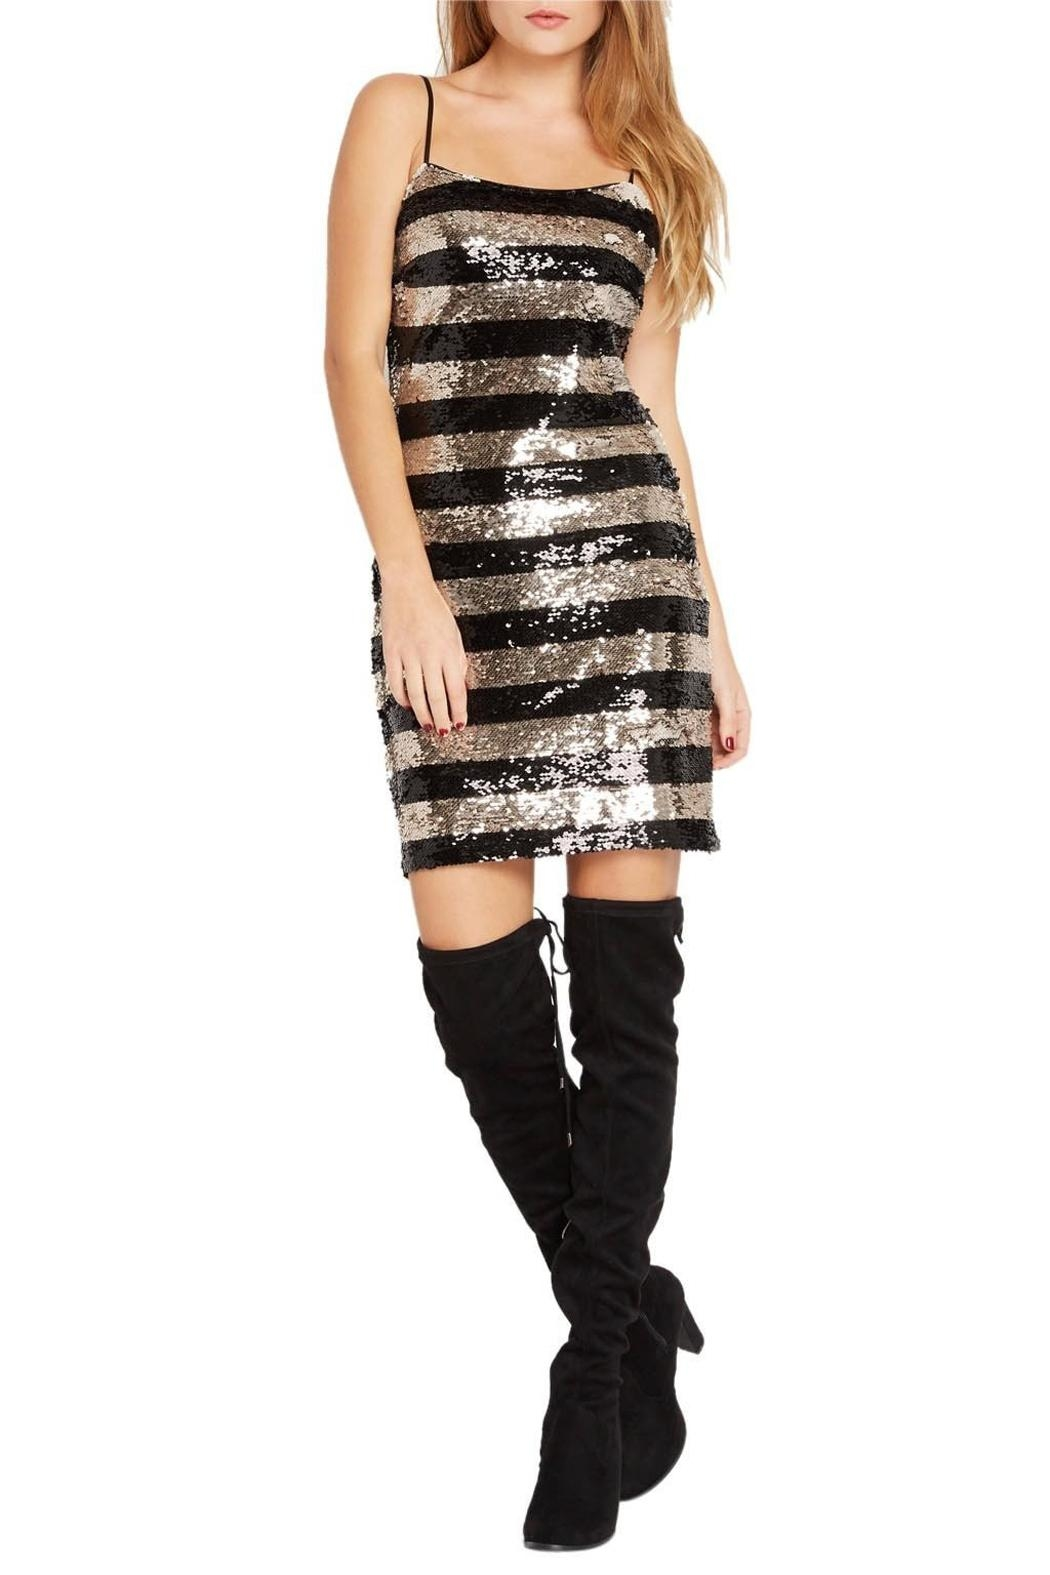 Mai Tai Metallic Sequin Dress - Front Cropped Image